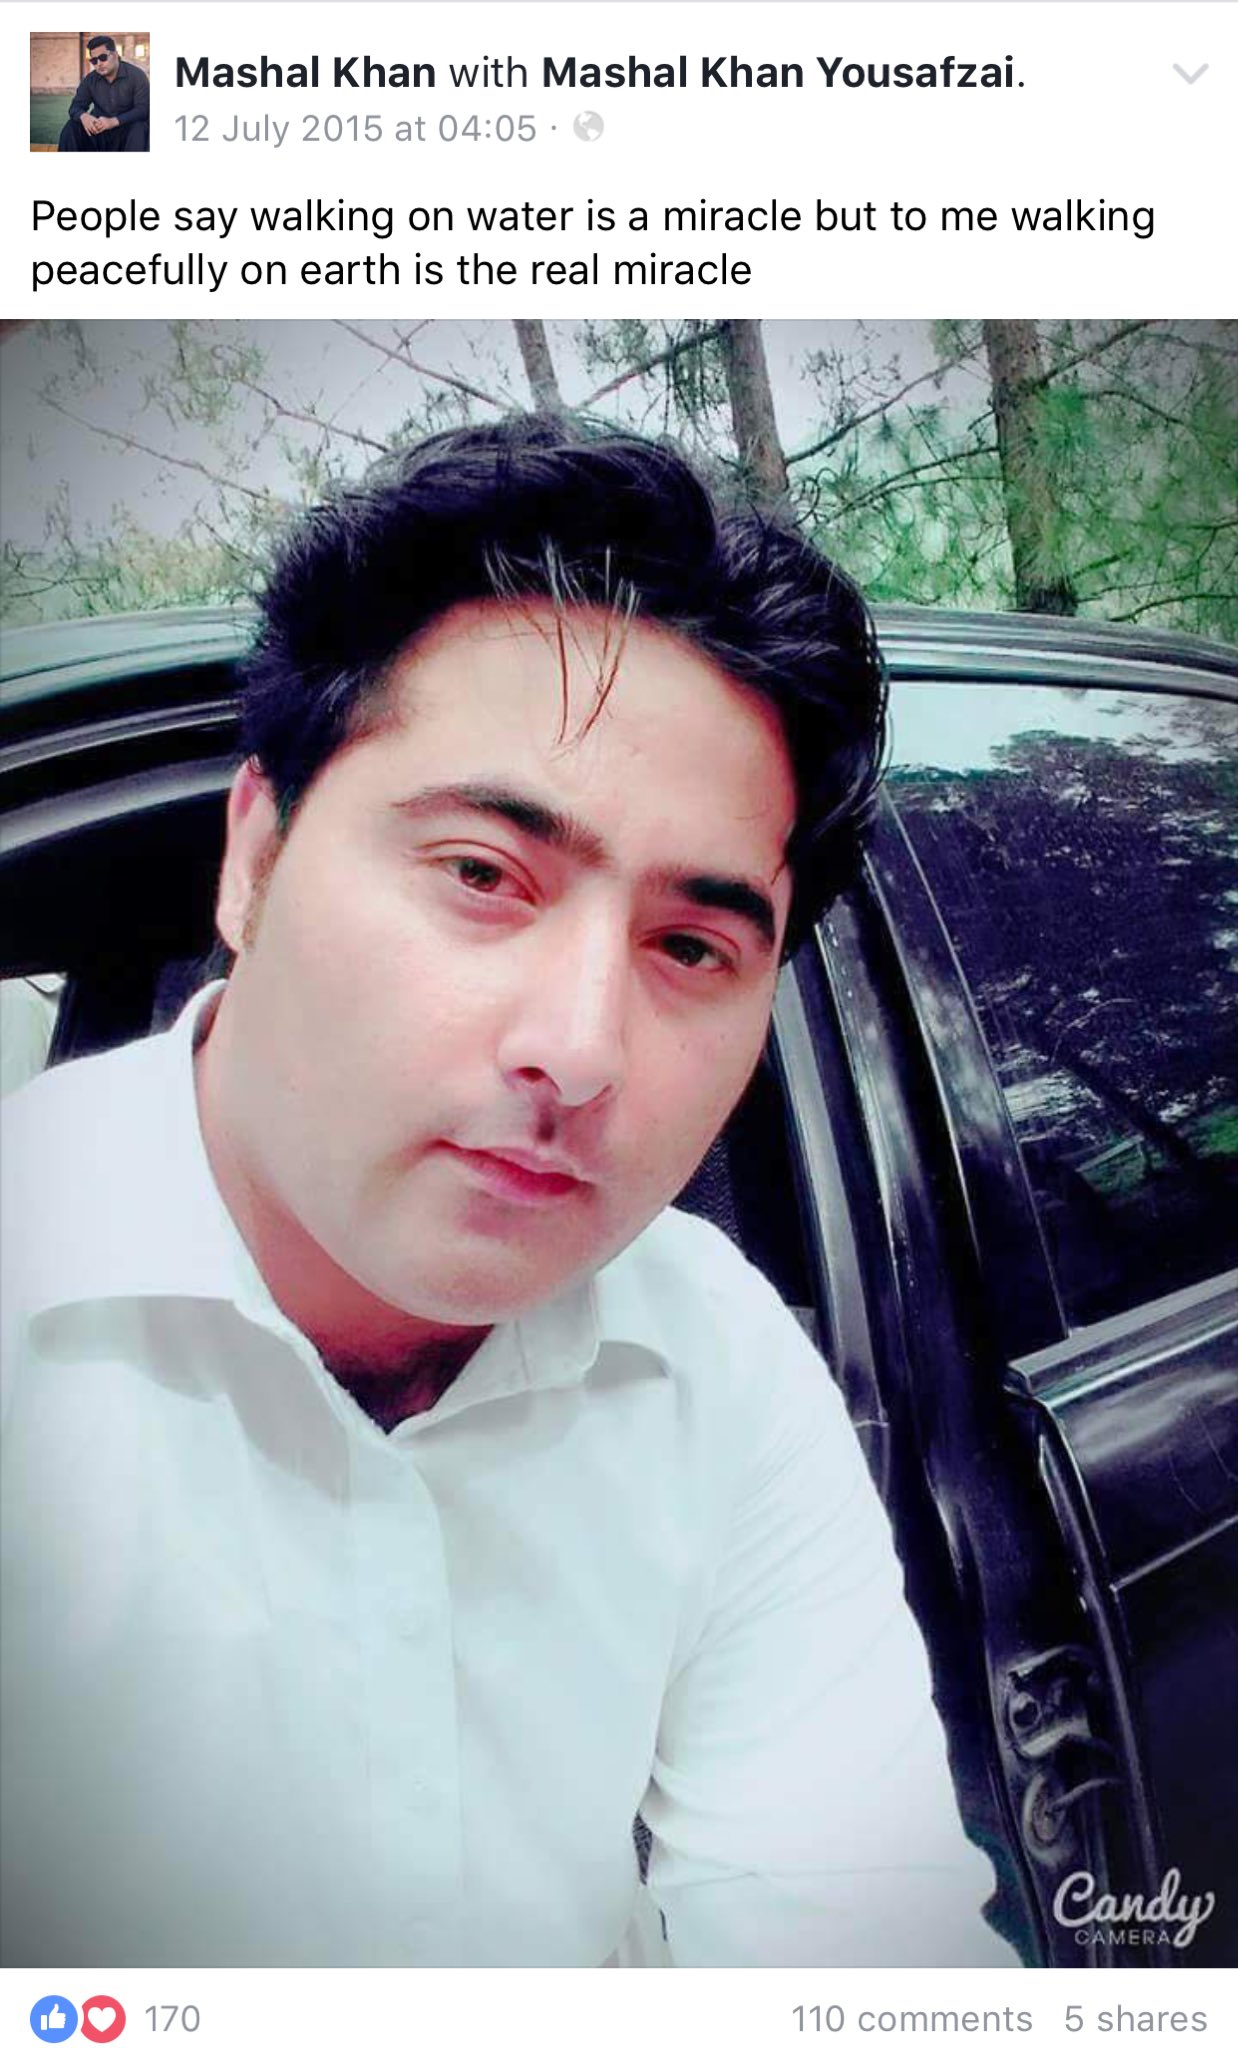 He knew he wasn't made for our times!! #MashalKhan #Mardan #hate @PTIofficial please condemn this! https://t.co/rxchquru3X